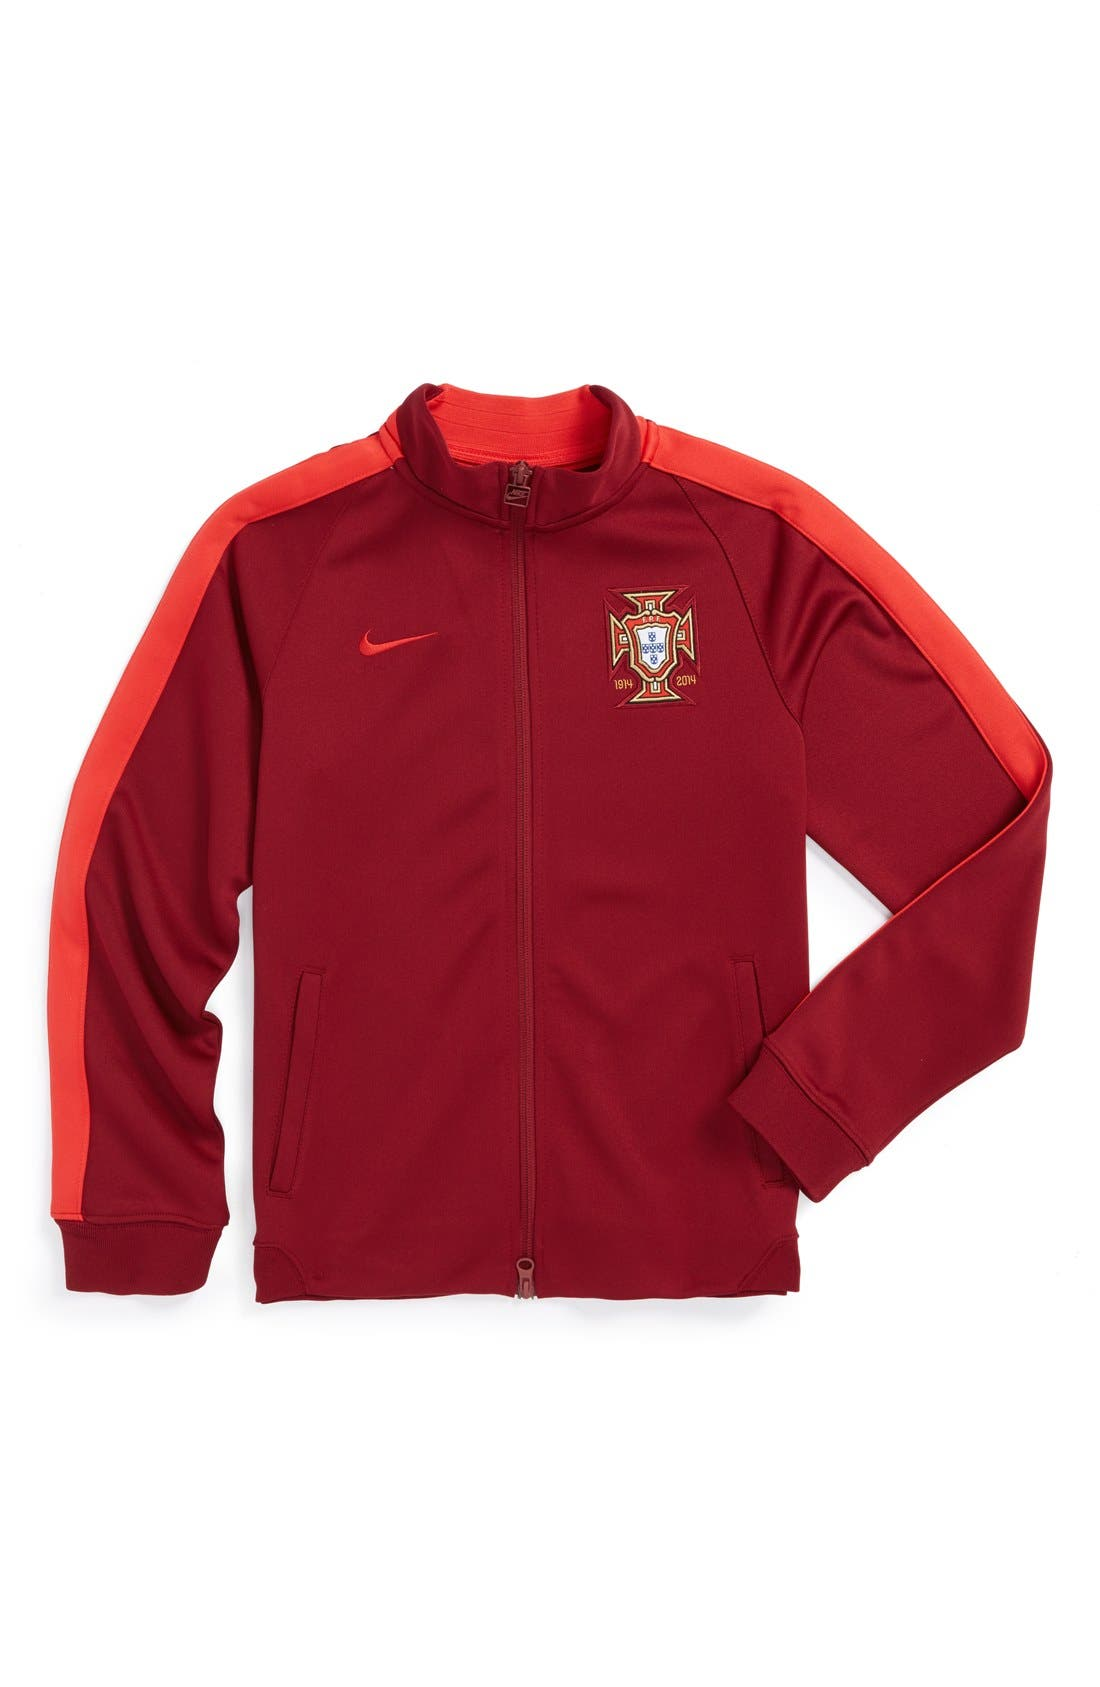 Alternate Image 1 Selected - Nike 'Portugal - N98 World Soccer Authentic' Track Jacket (Big Boys)